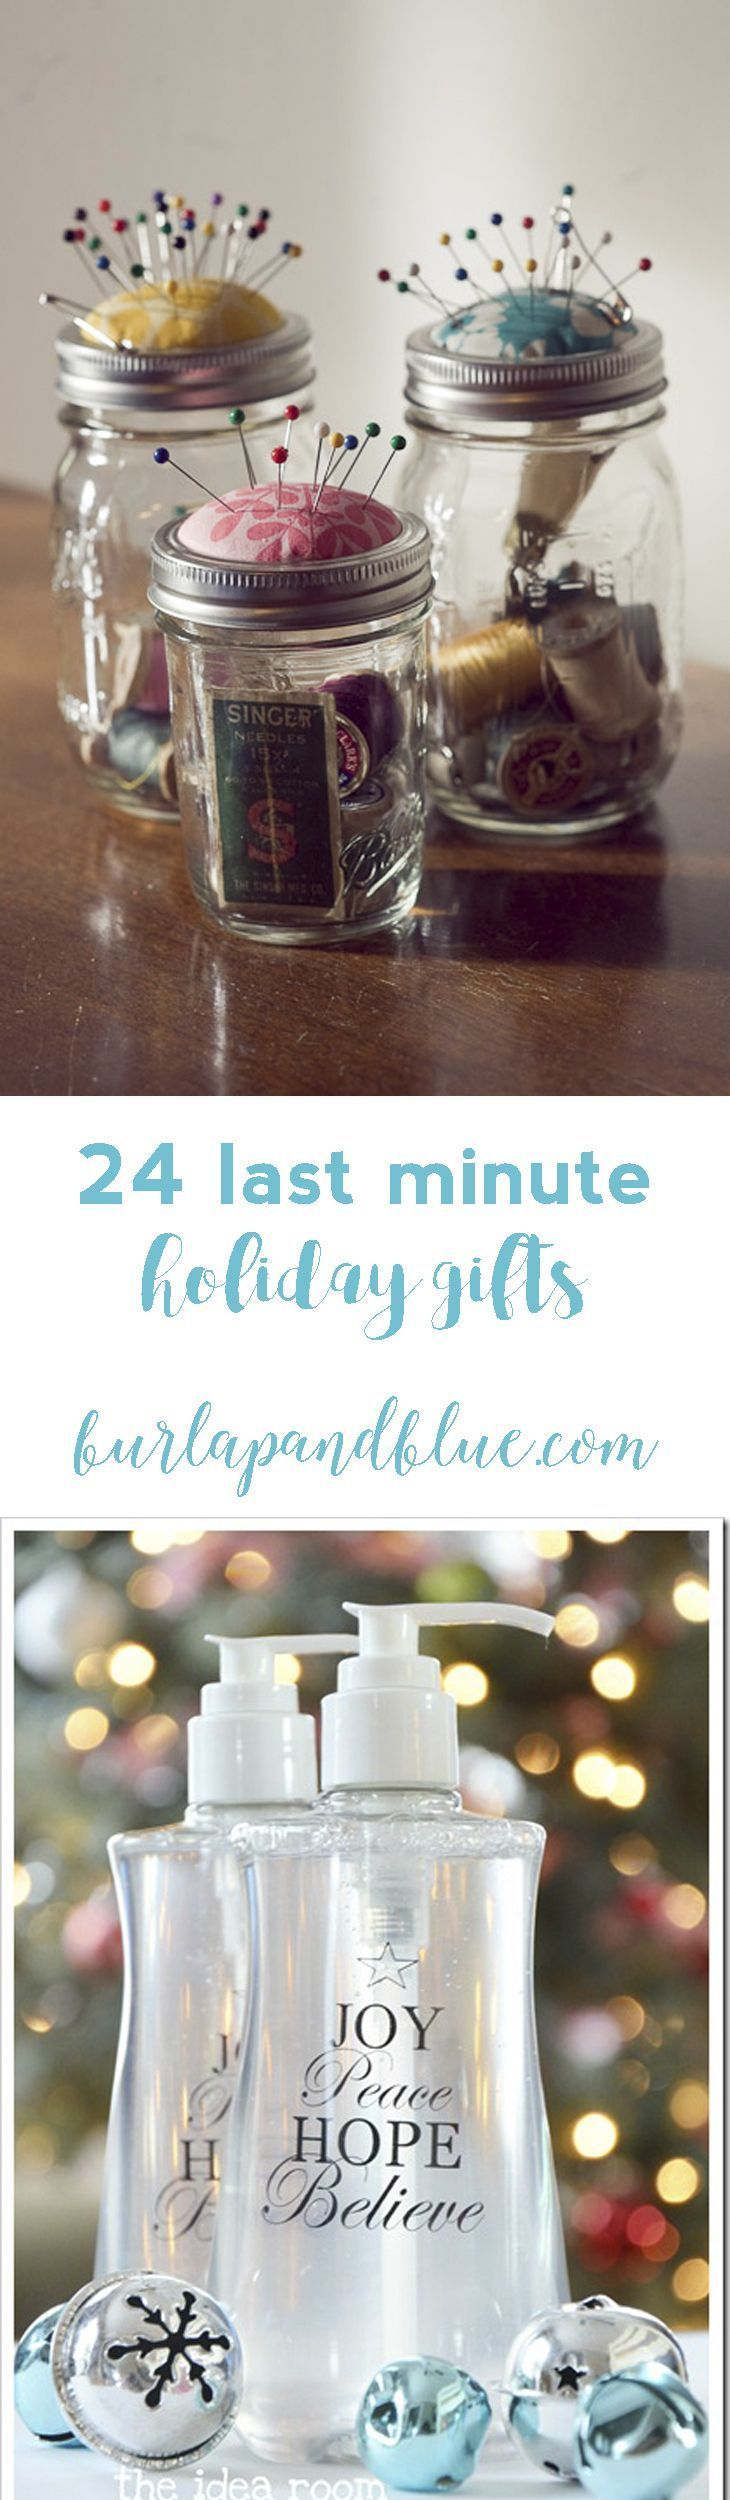 last minute christmas gifts to make!                                                                                                                                                                                 More